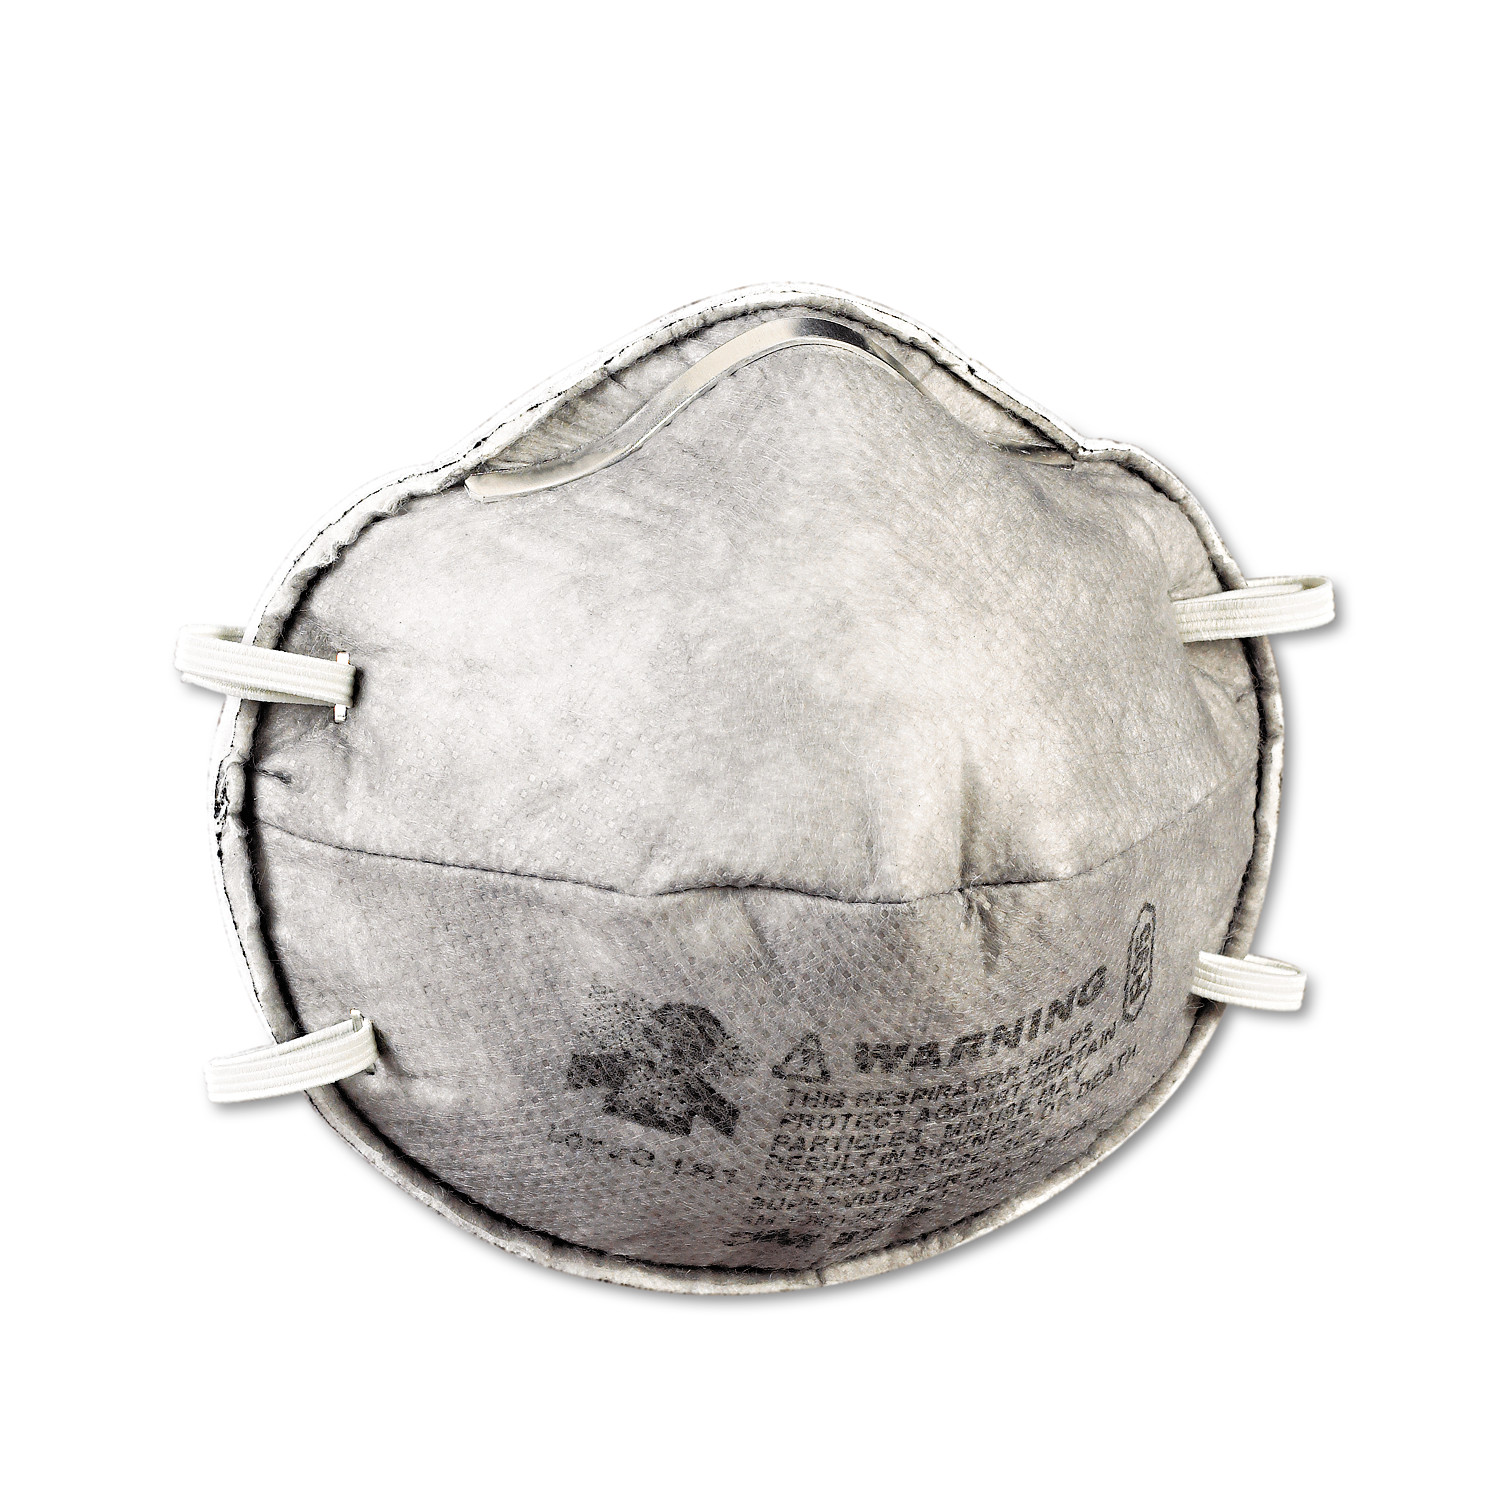 3M R95 Particulate Respirator w Nuisance-Level Organic Vapor Relief, 20 Box by 3M/COMMERCIAL TAPE DIV.